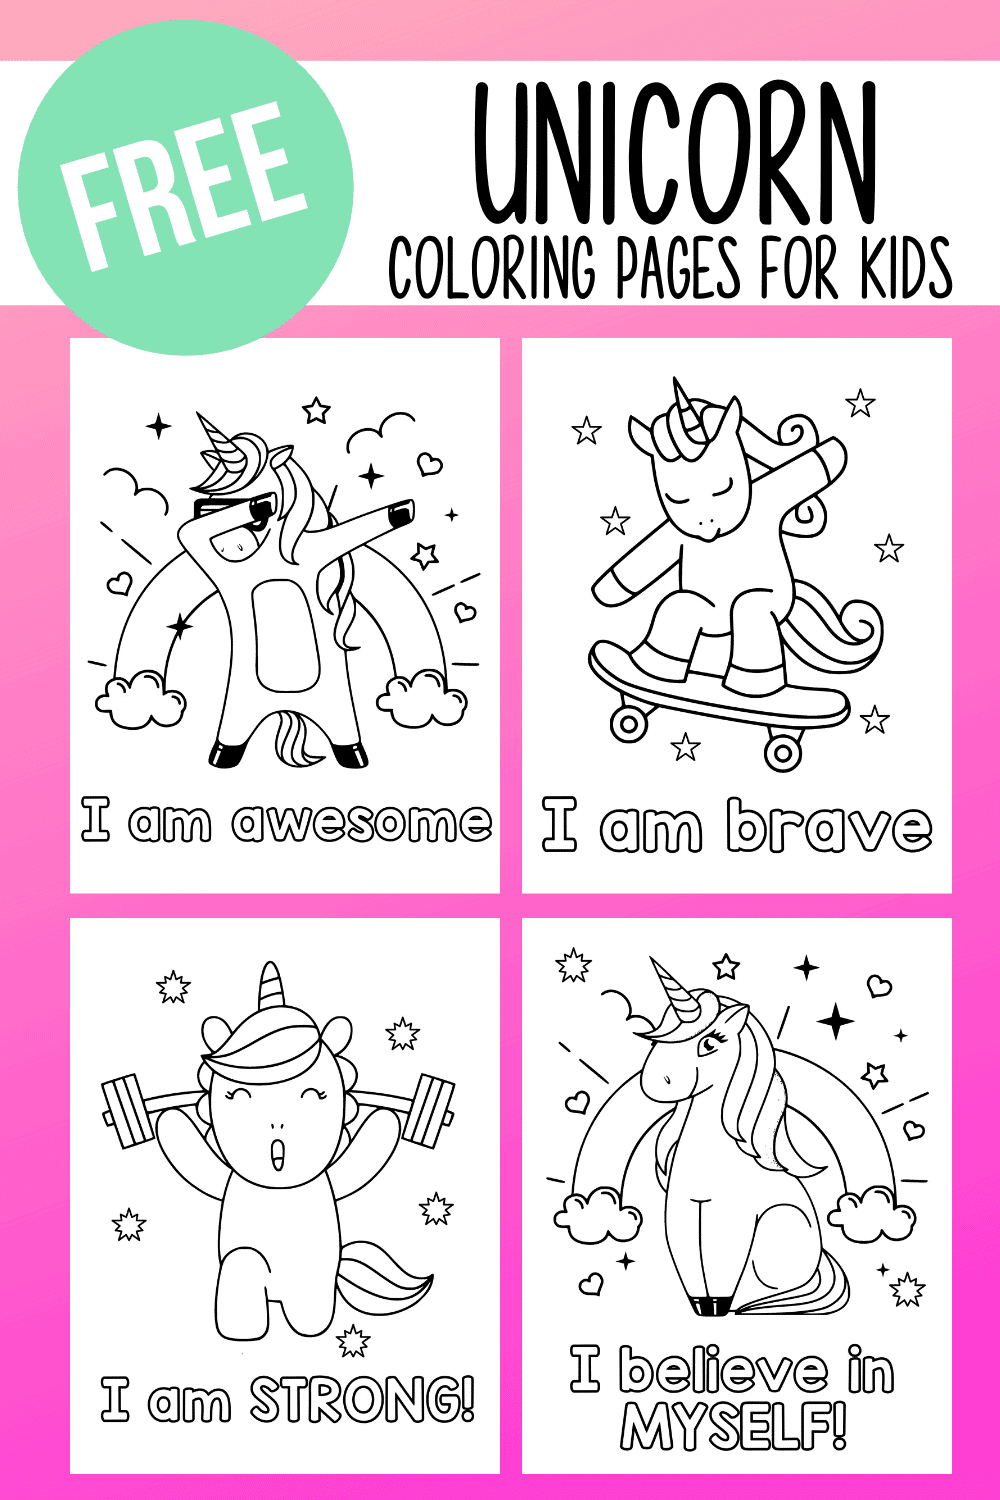 Free Unicorn Coloring Pages with Positive Affirmations for Kids